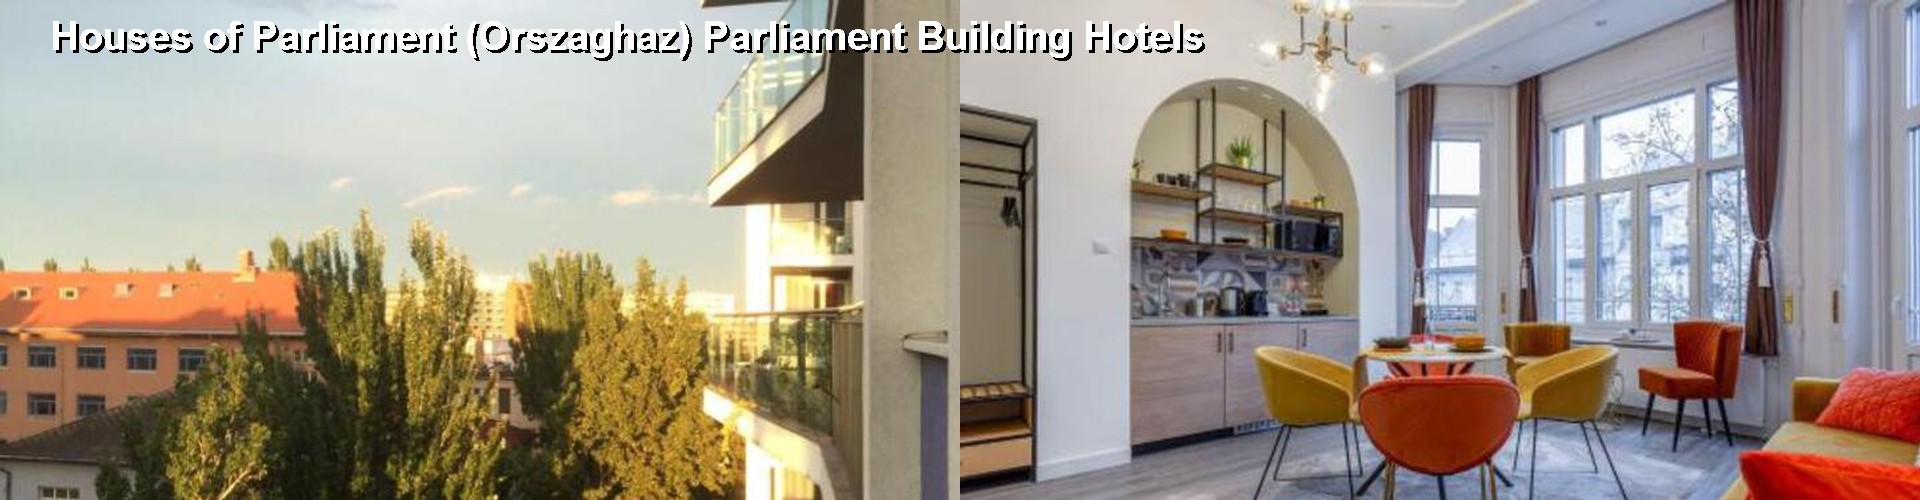 5 Best Hotels near Houses of Parliament (Orszaghaz) Parliament Building